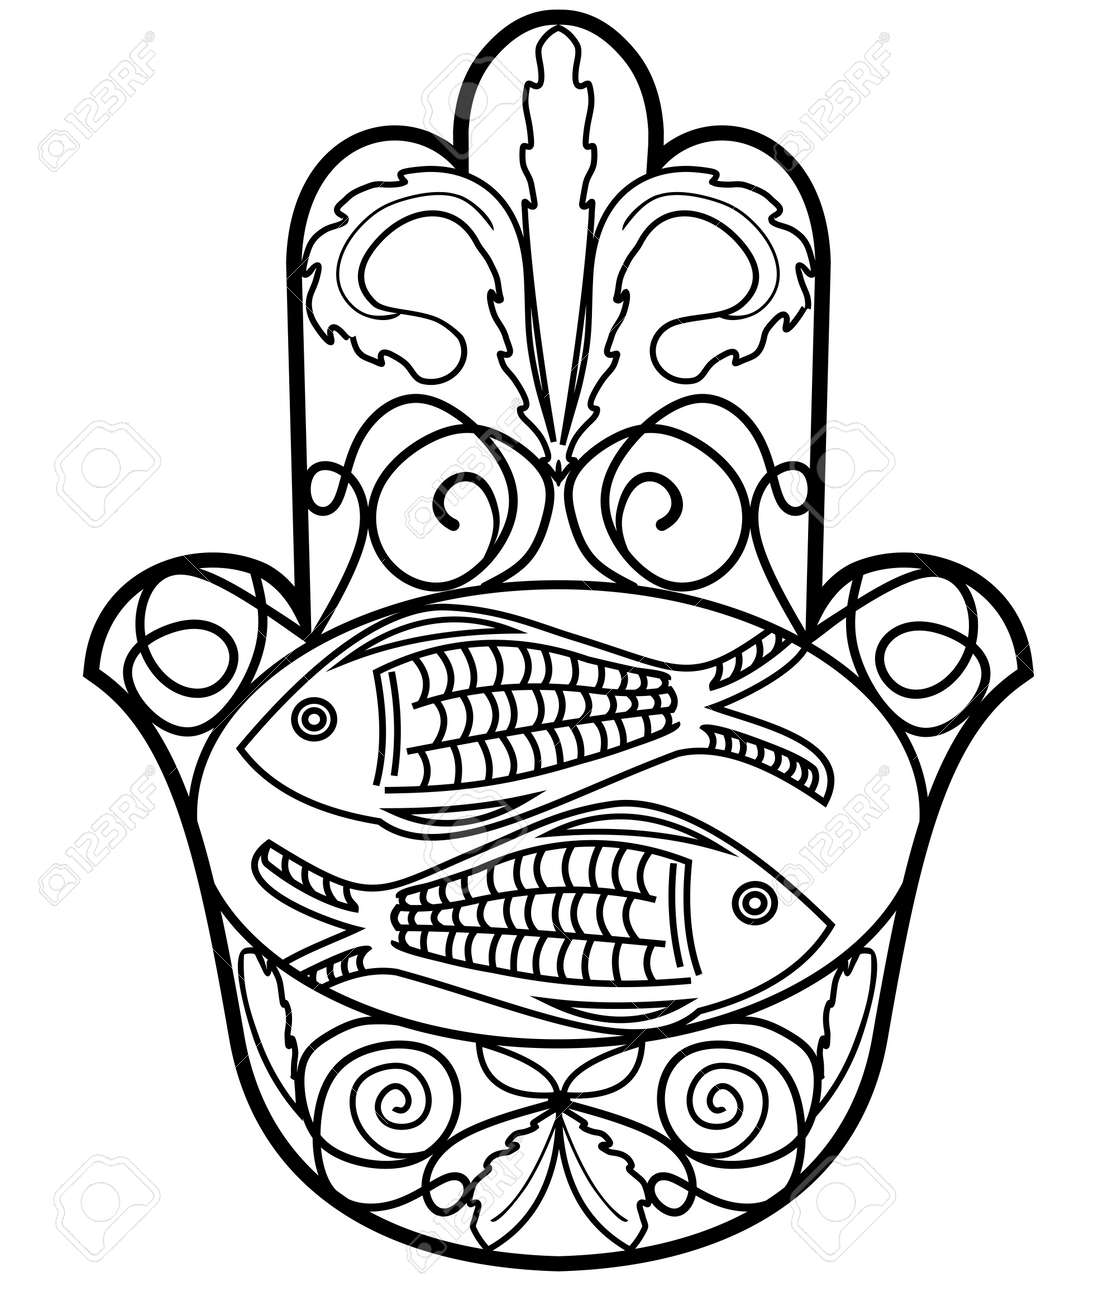 Hamsa Miriam Hand Symbol With Floral Ornament And Two Fishes